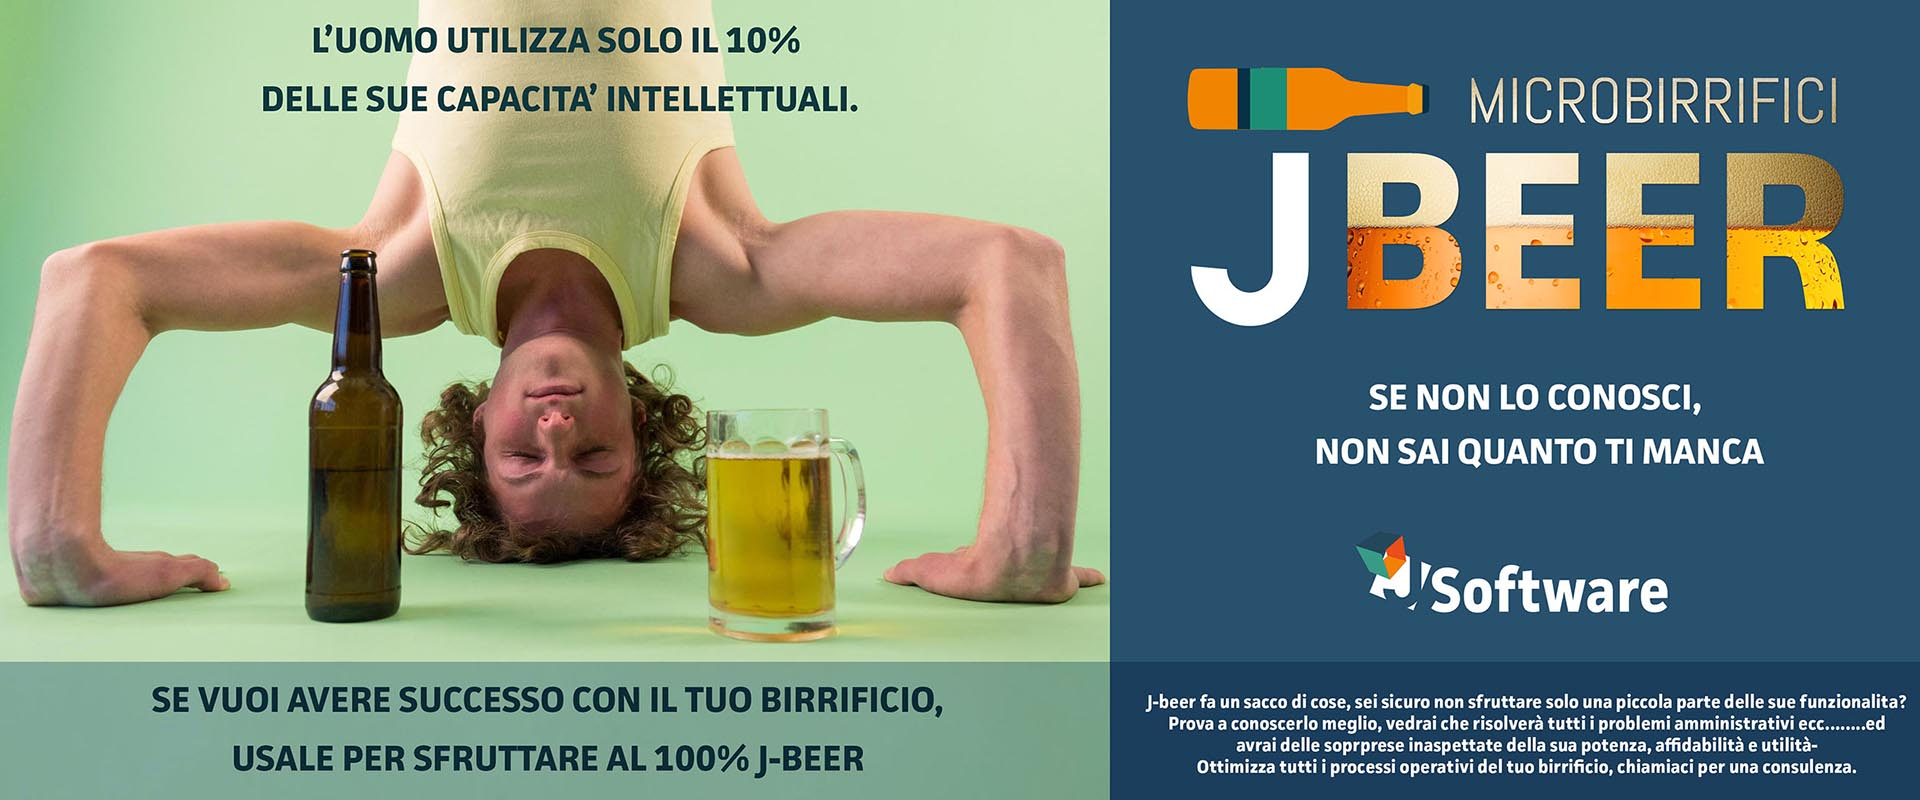 J-Beer - software gestionale per il birrificio